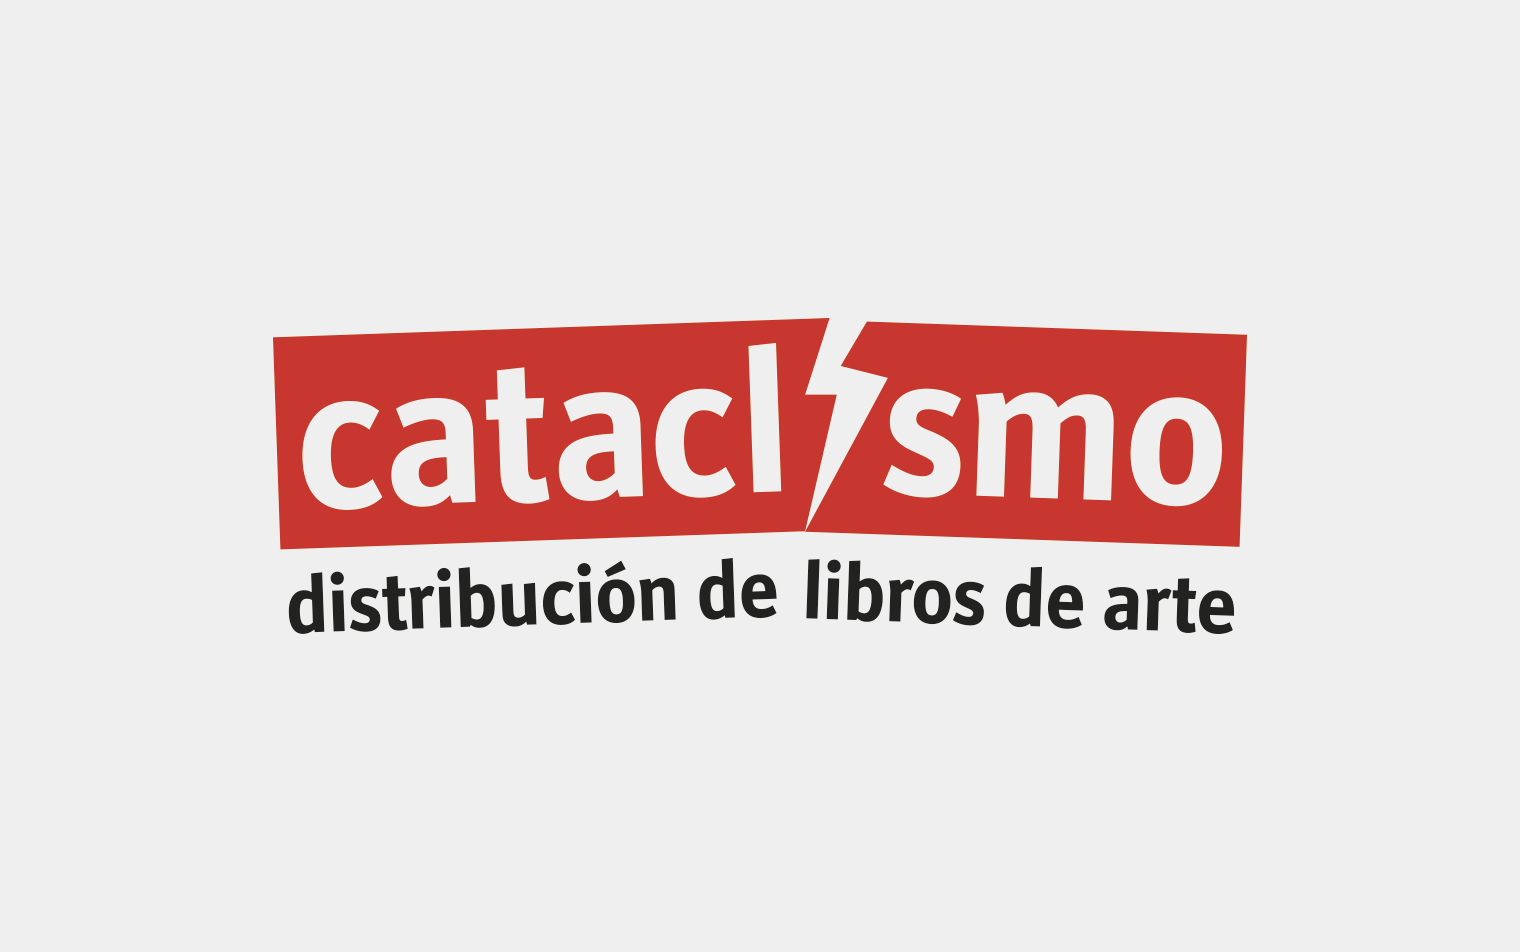 Cataclismo. Logotipo. Estudio blg